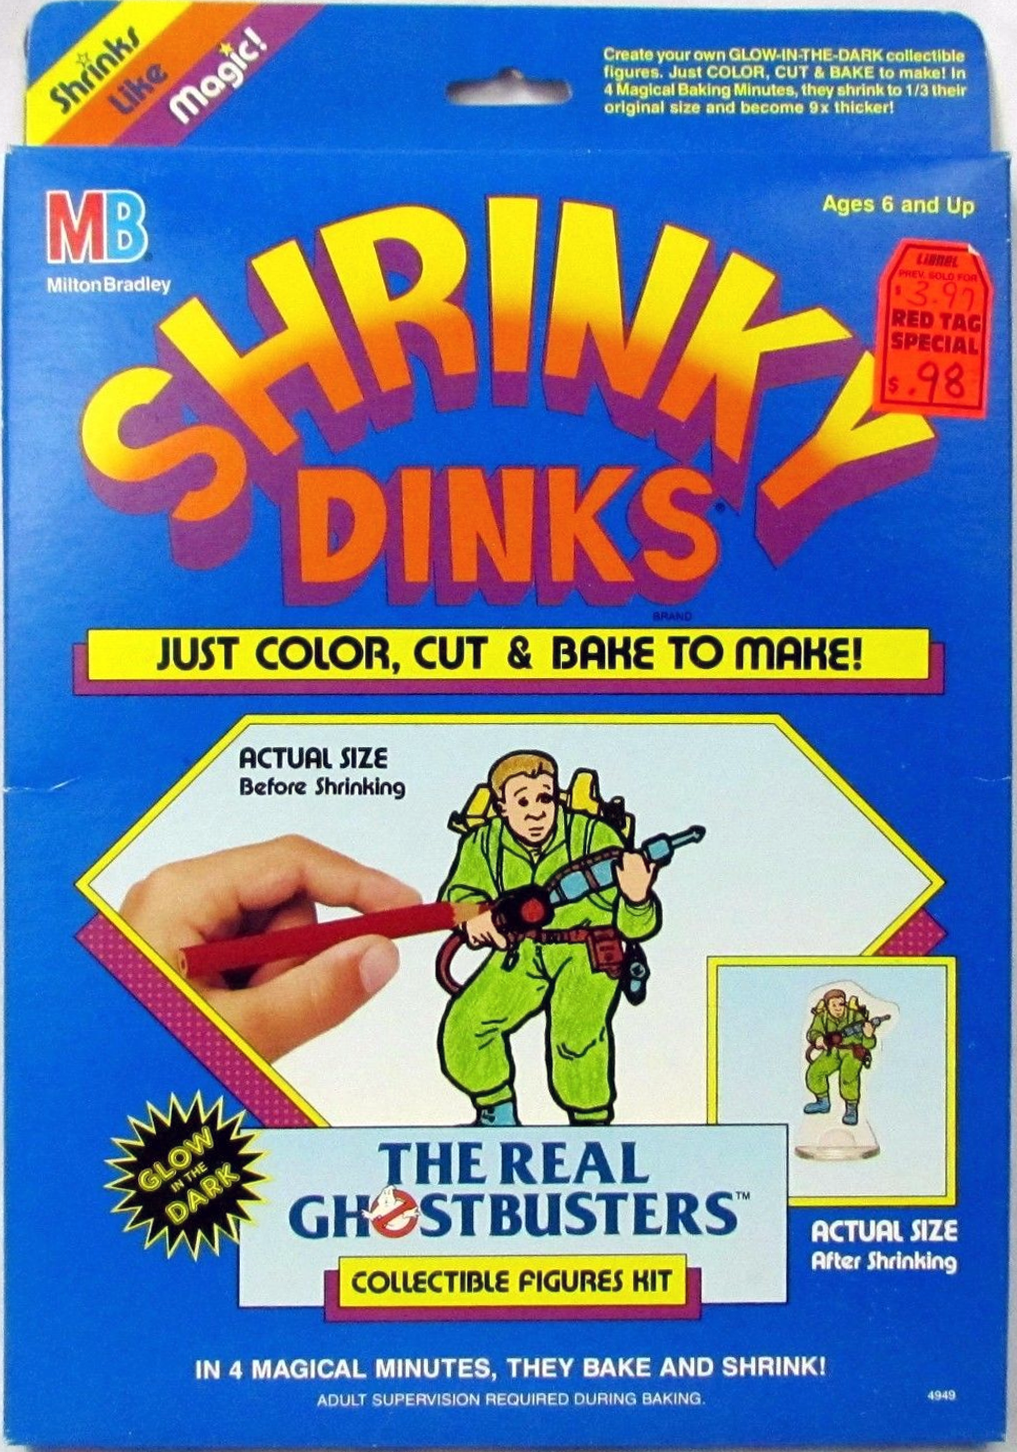 The Real Ghostbusters: Shrinky Dinks